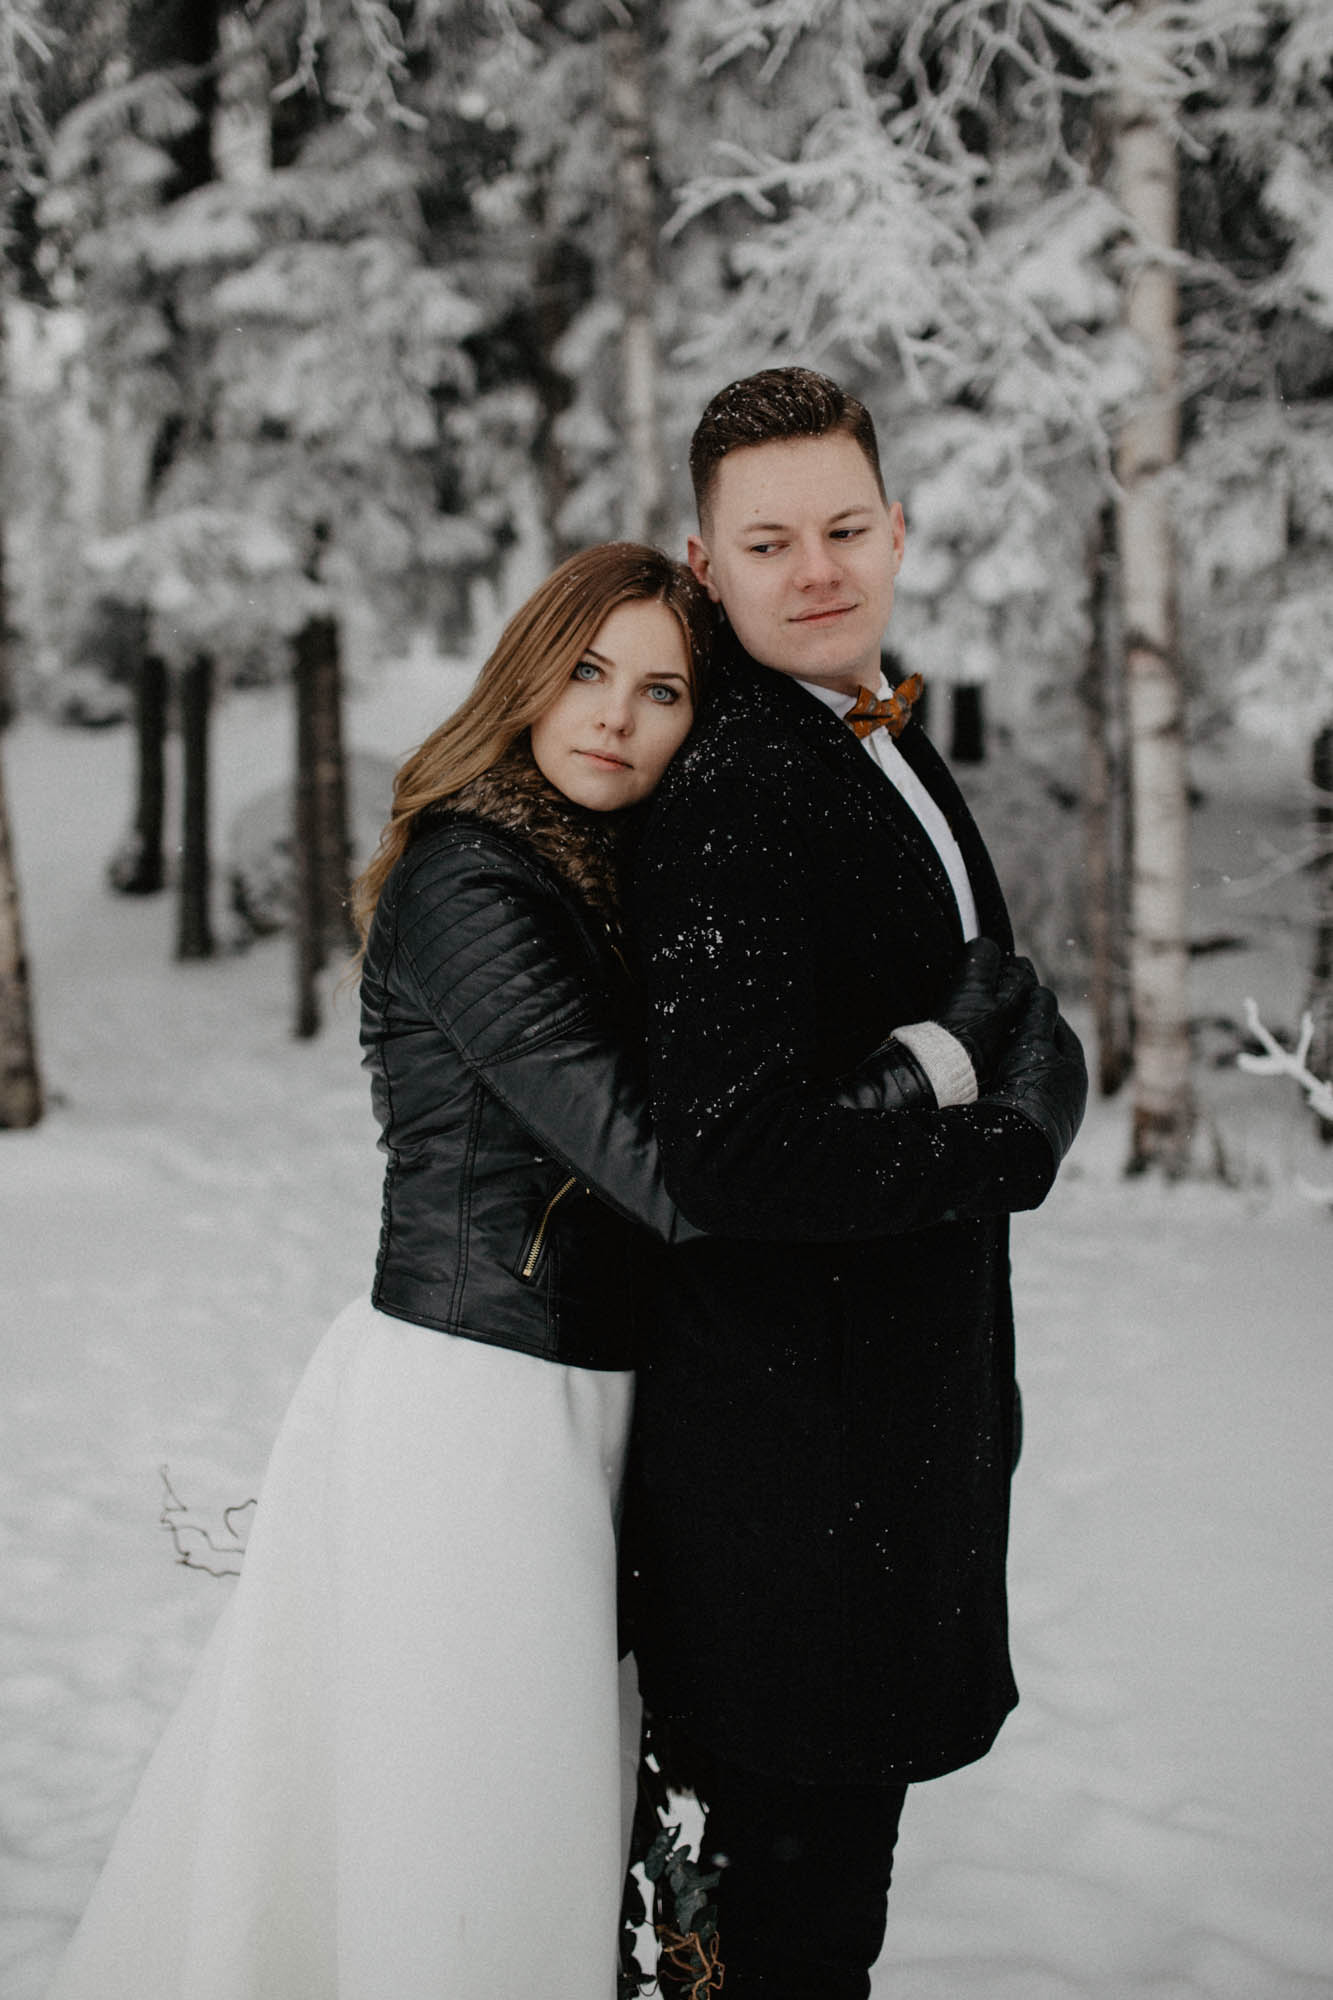 ashley_schulman_photography-winter_wedding_tampere-40.jpg